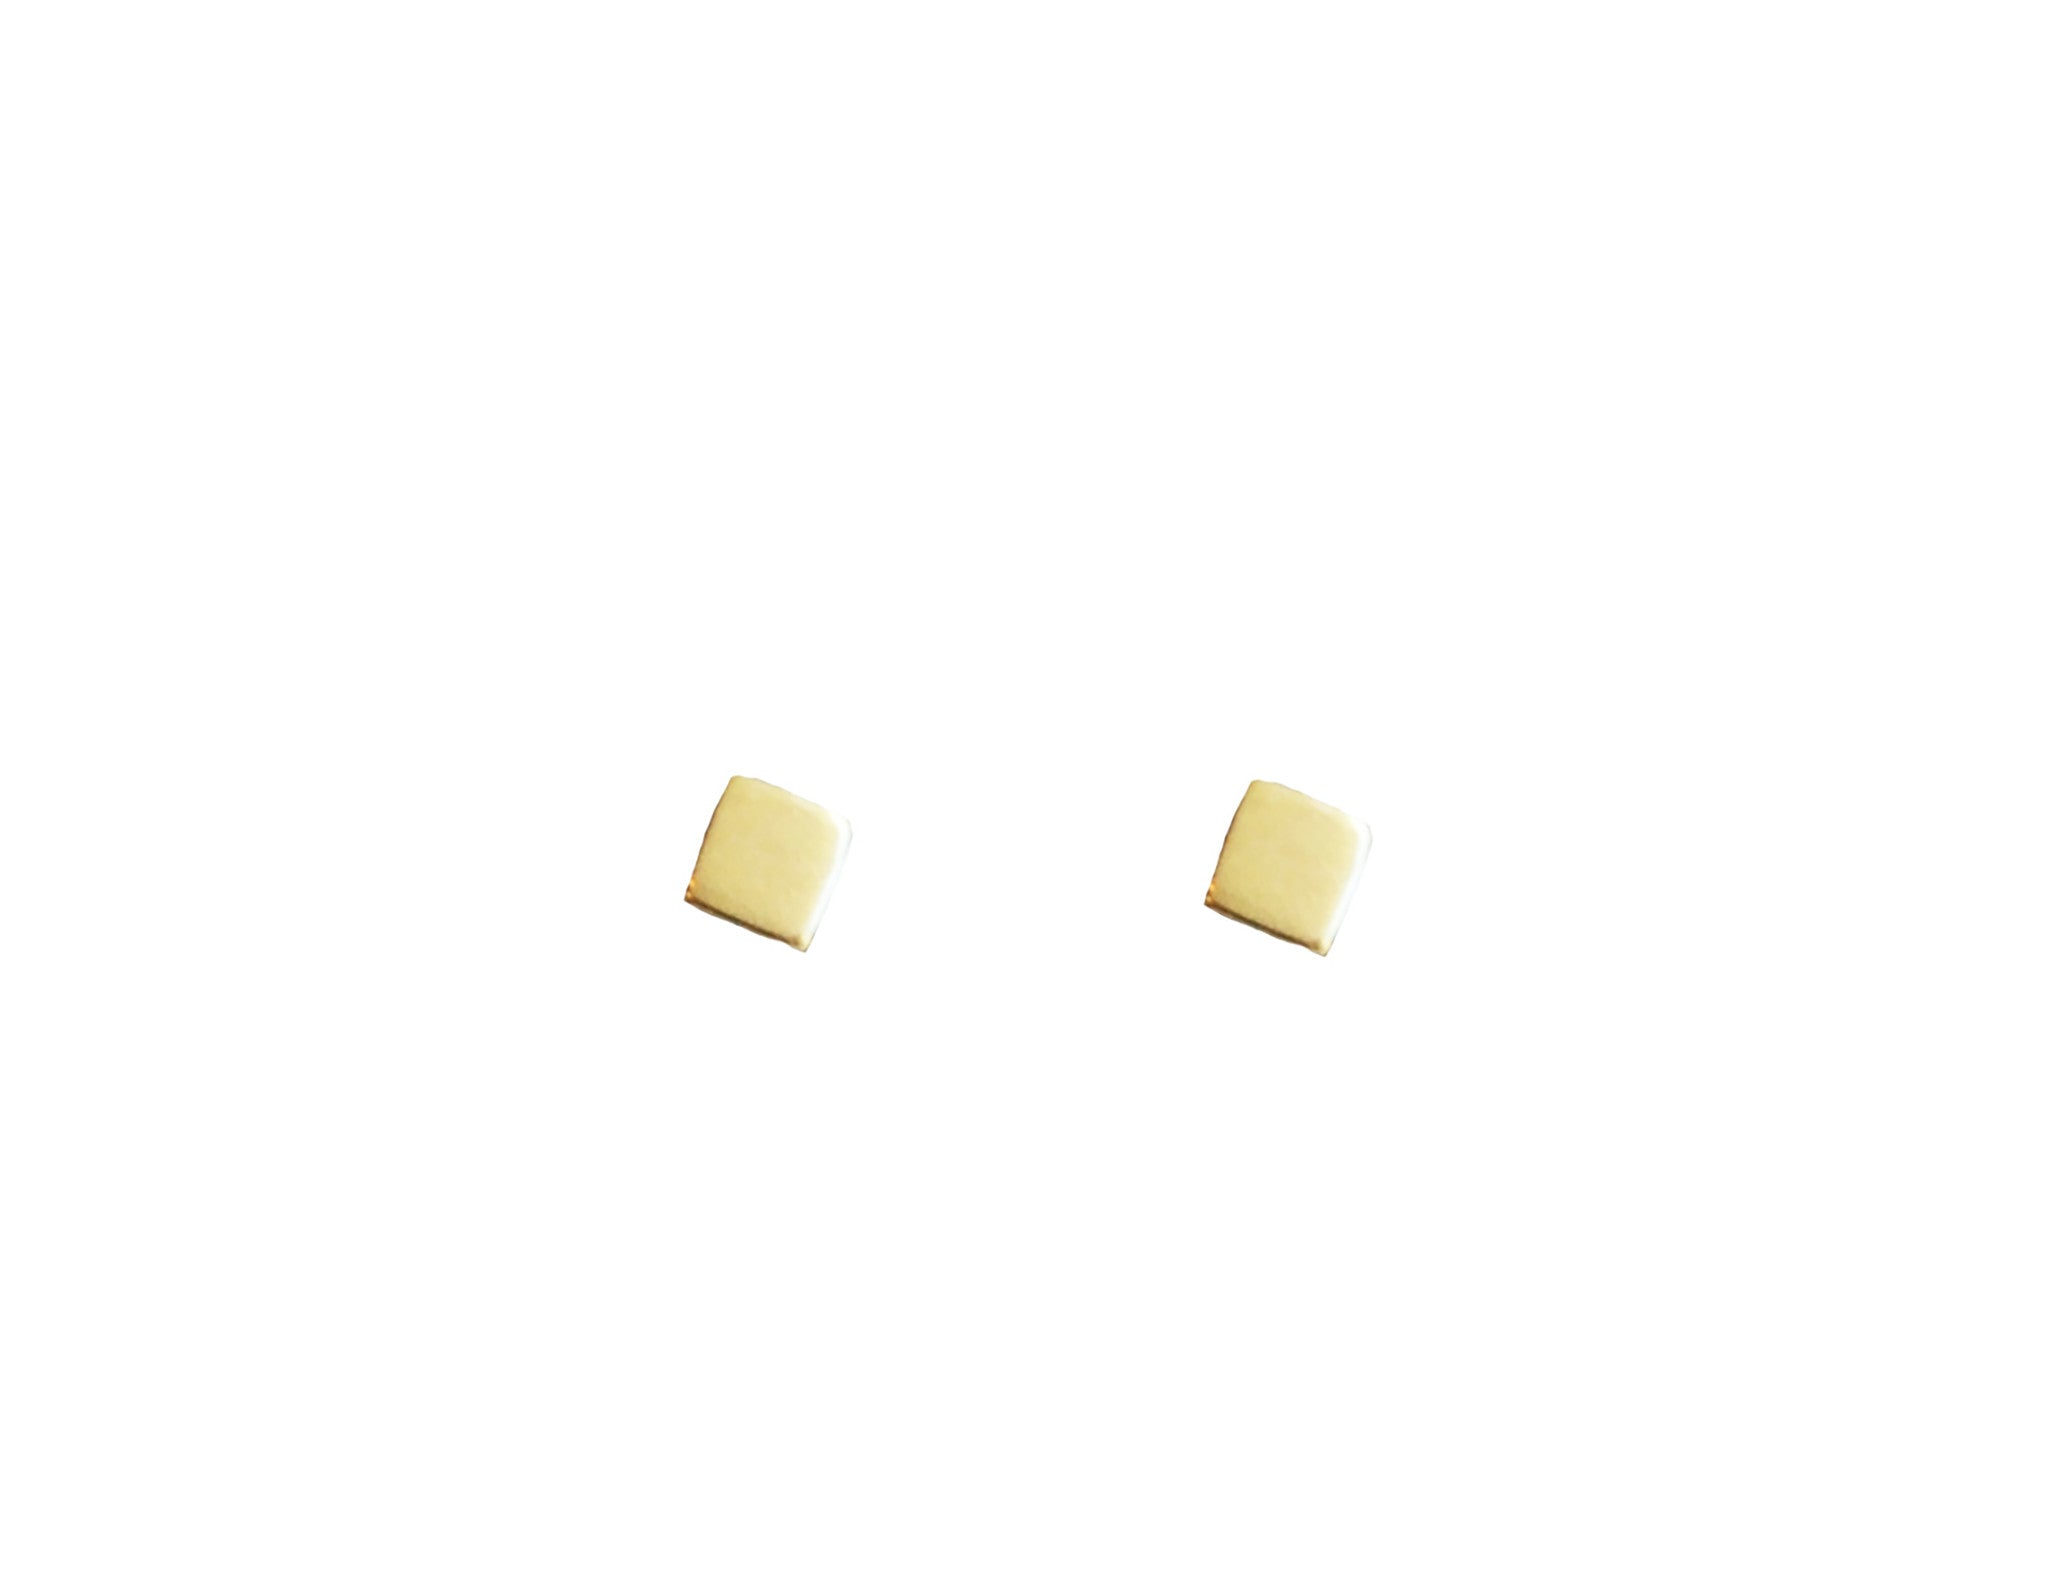 Small Square Stud Earrings Wendy Nichol Fine Jewelry Designer Handmade in NYC solid 14k Gold Sterling Silver Dainty Delicate